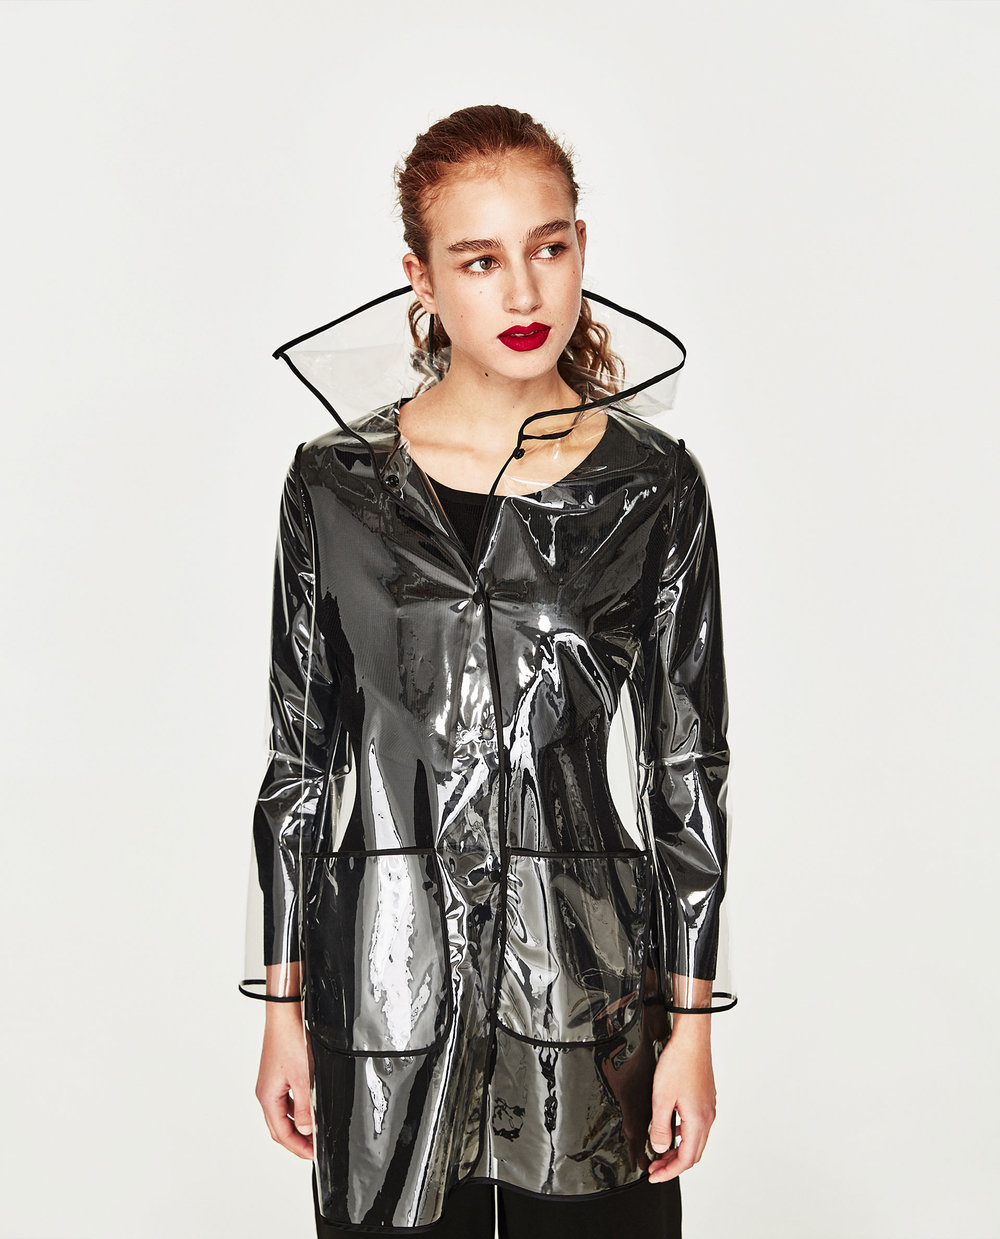 Transparent Raincoat £49.99 by TRF at Zara